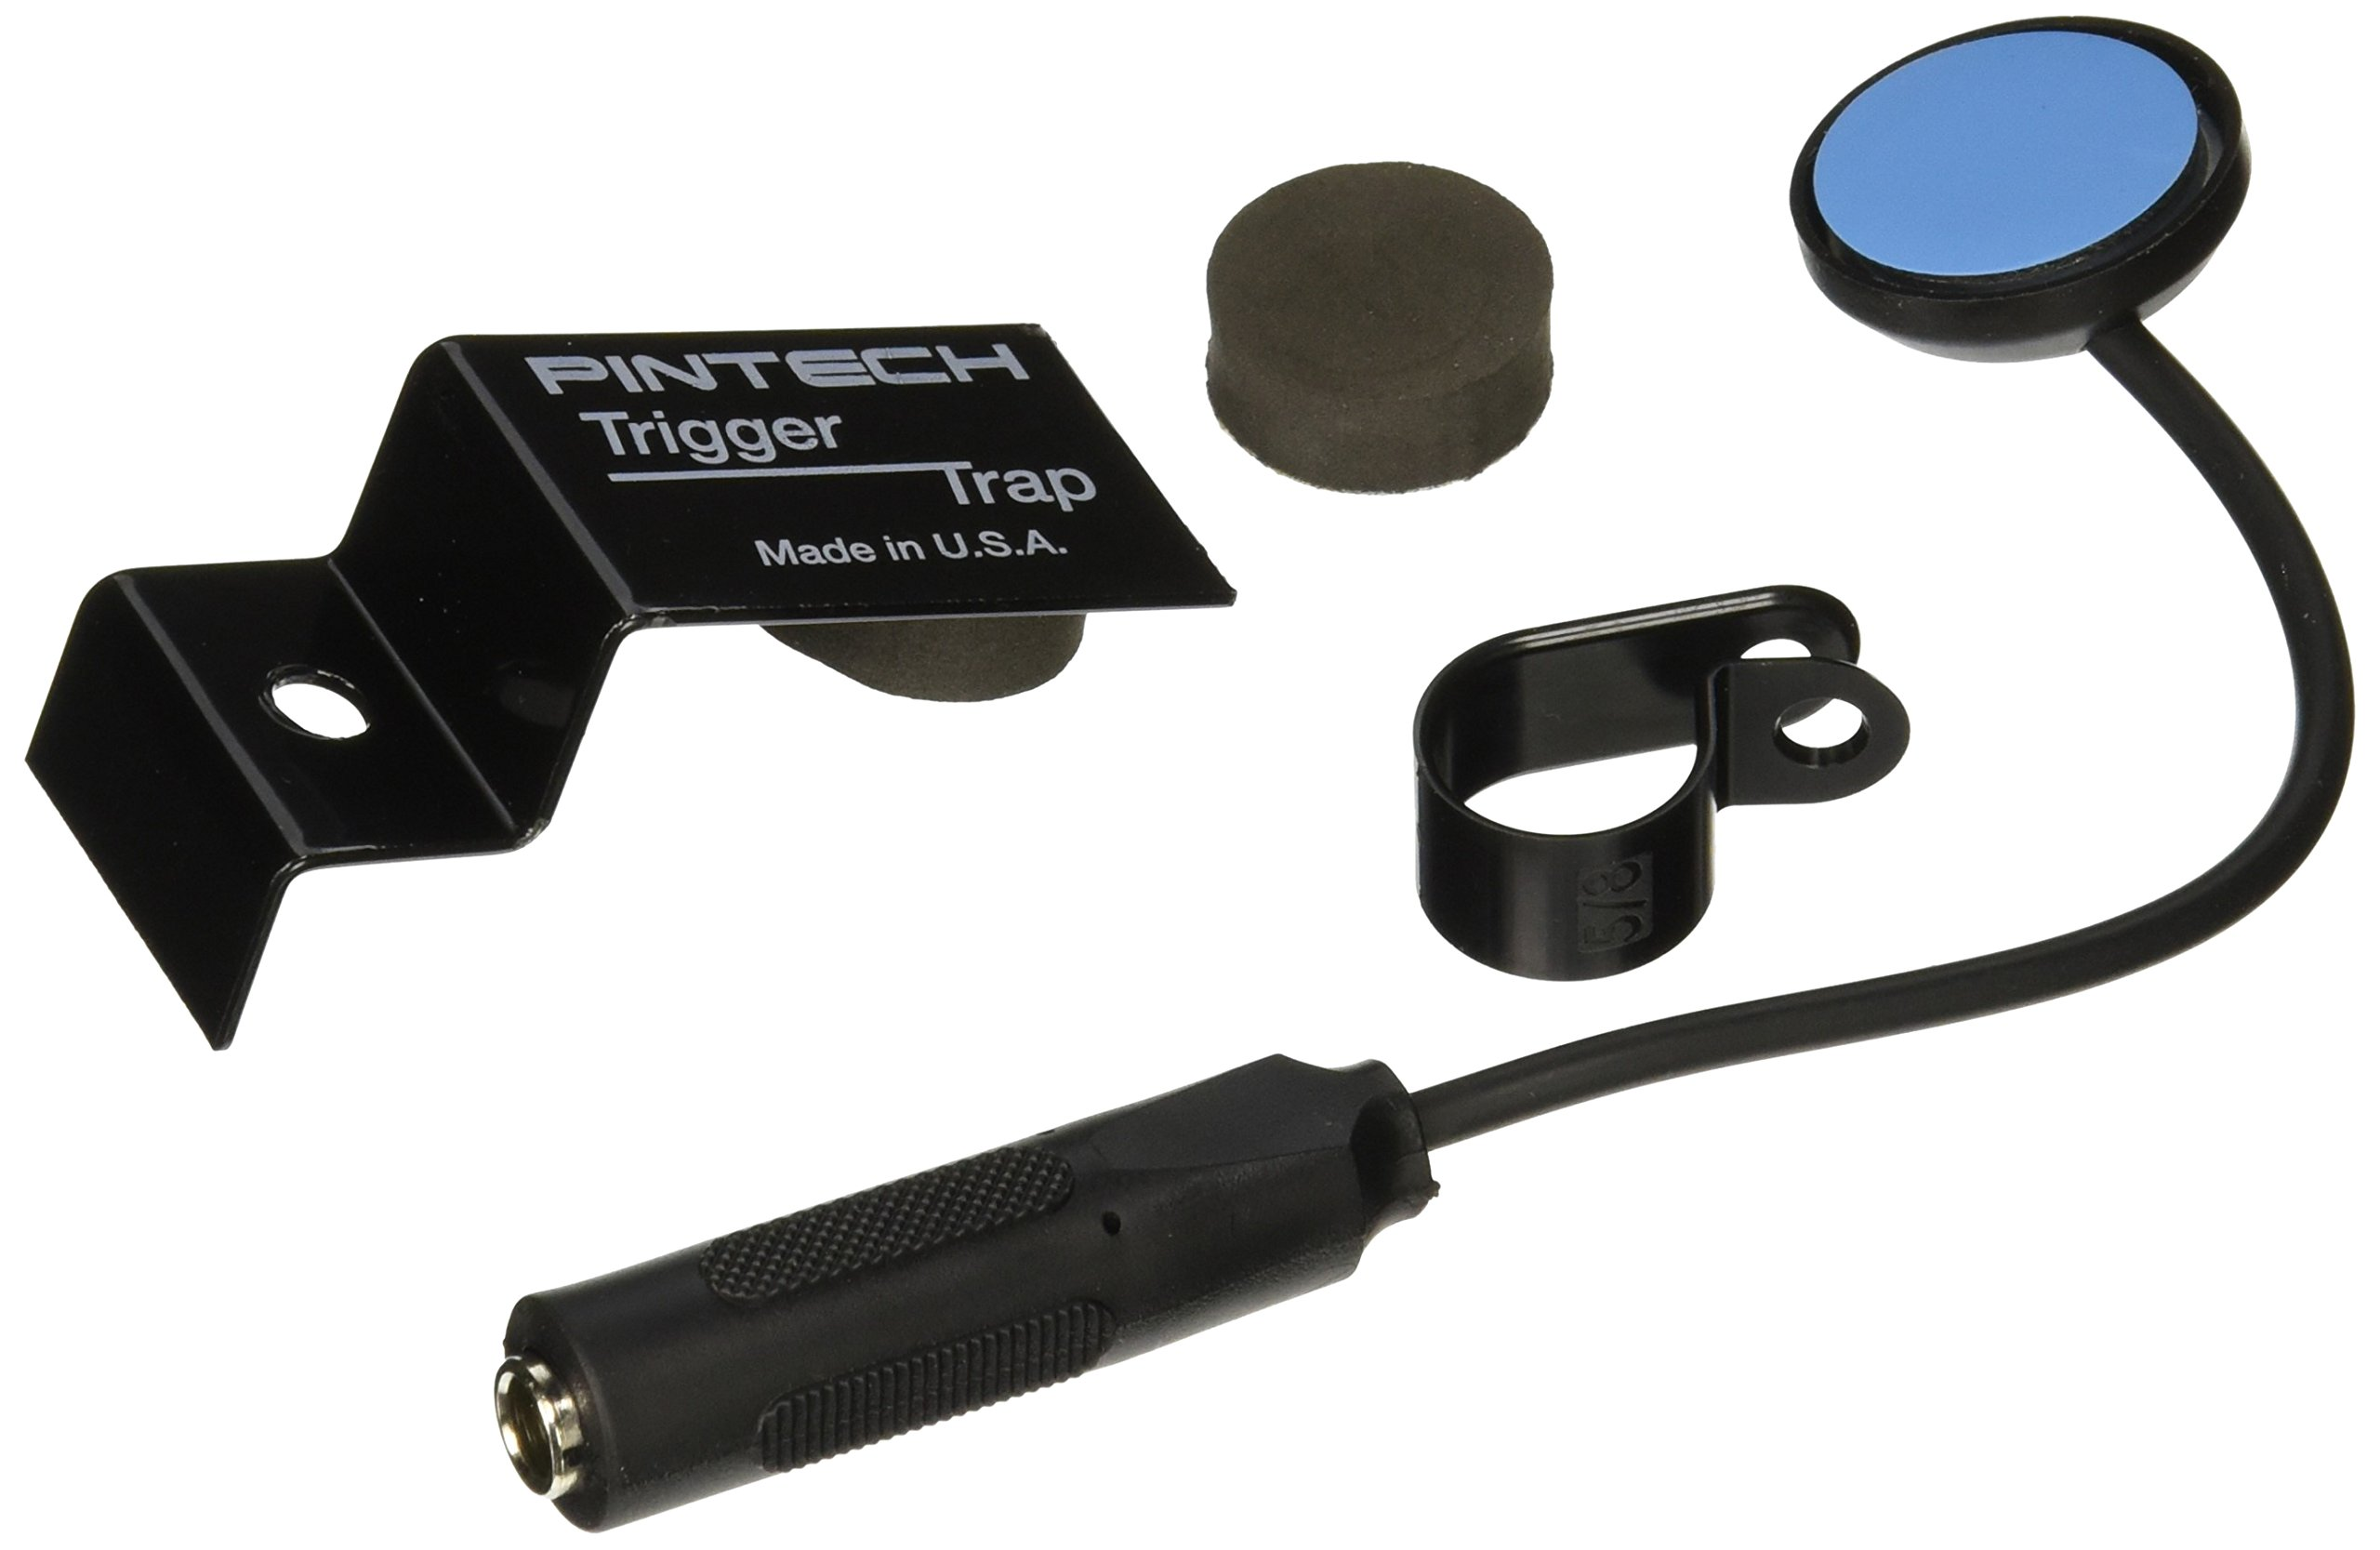 Pintech Percussion RS-5T Acoustic Head Trigger by Pintech Percussion